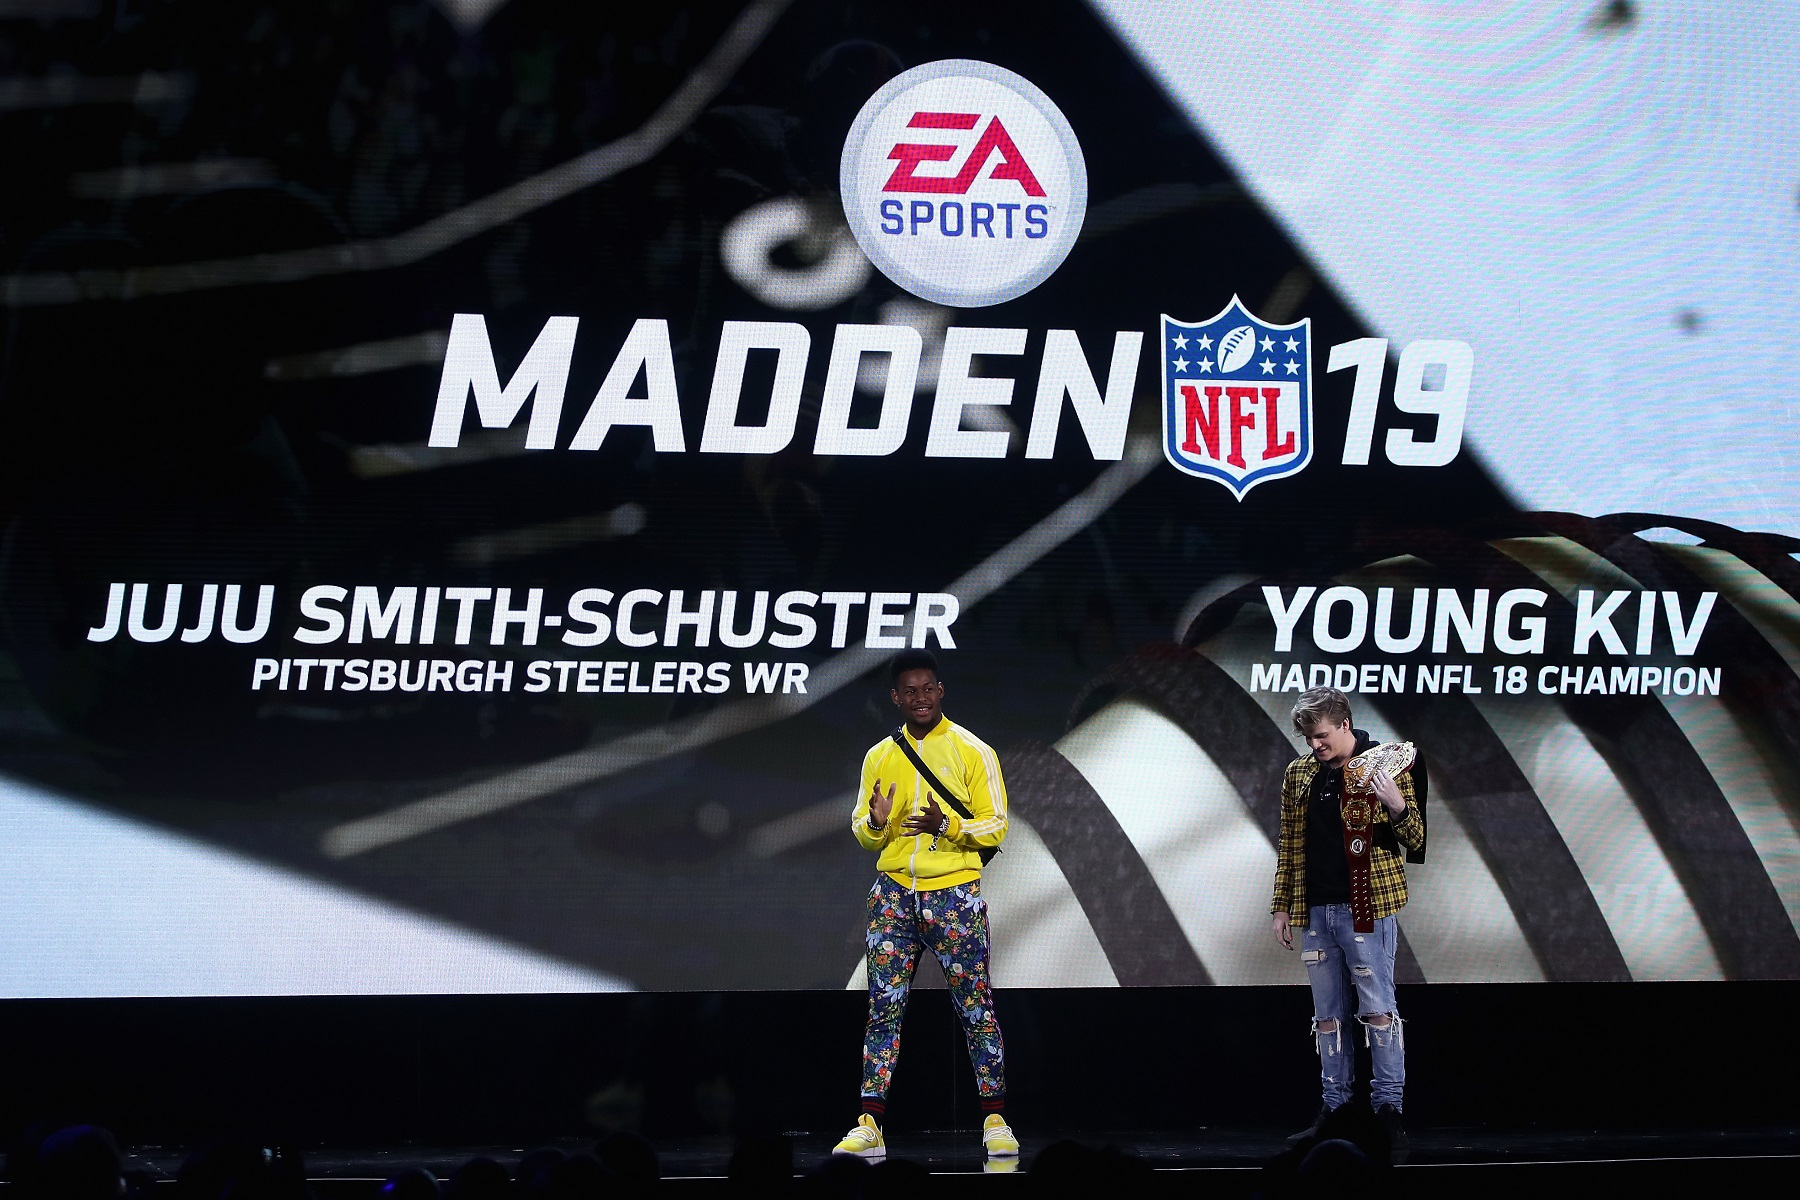 Flags Are Down, and the Maker of Madden NFL Faces More Than a 15-Yard Penalty